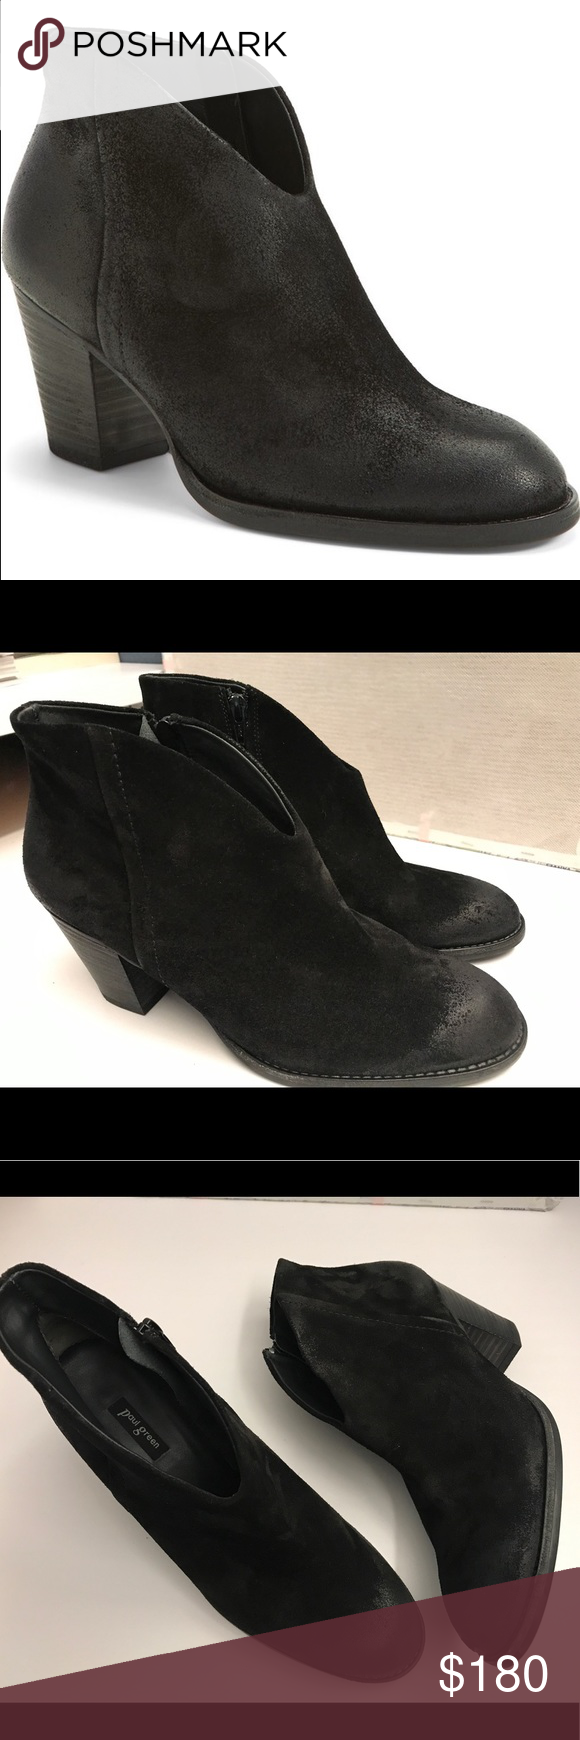 """BNIB Paul Green Delgado Black Booties BNIB. Purchased them but never worn since they are too big for me. •Size AU 6.5, US 9. •2 1/4"""" heel •4 1/4 shaft •side zip closure •leather upper and lining/textured rubber sole •made in Austria. Super comfy!!! Paul Green Shoes Ankle Boots & Booties"""